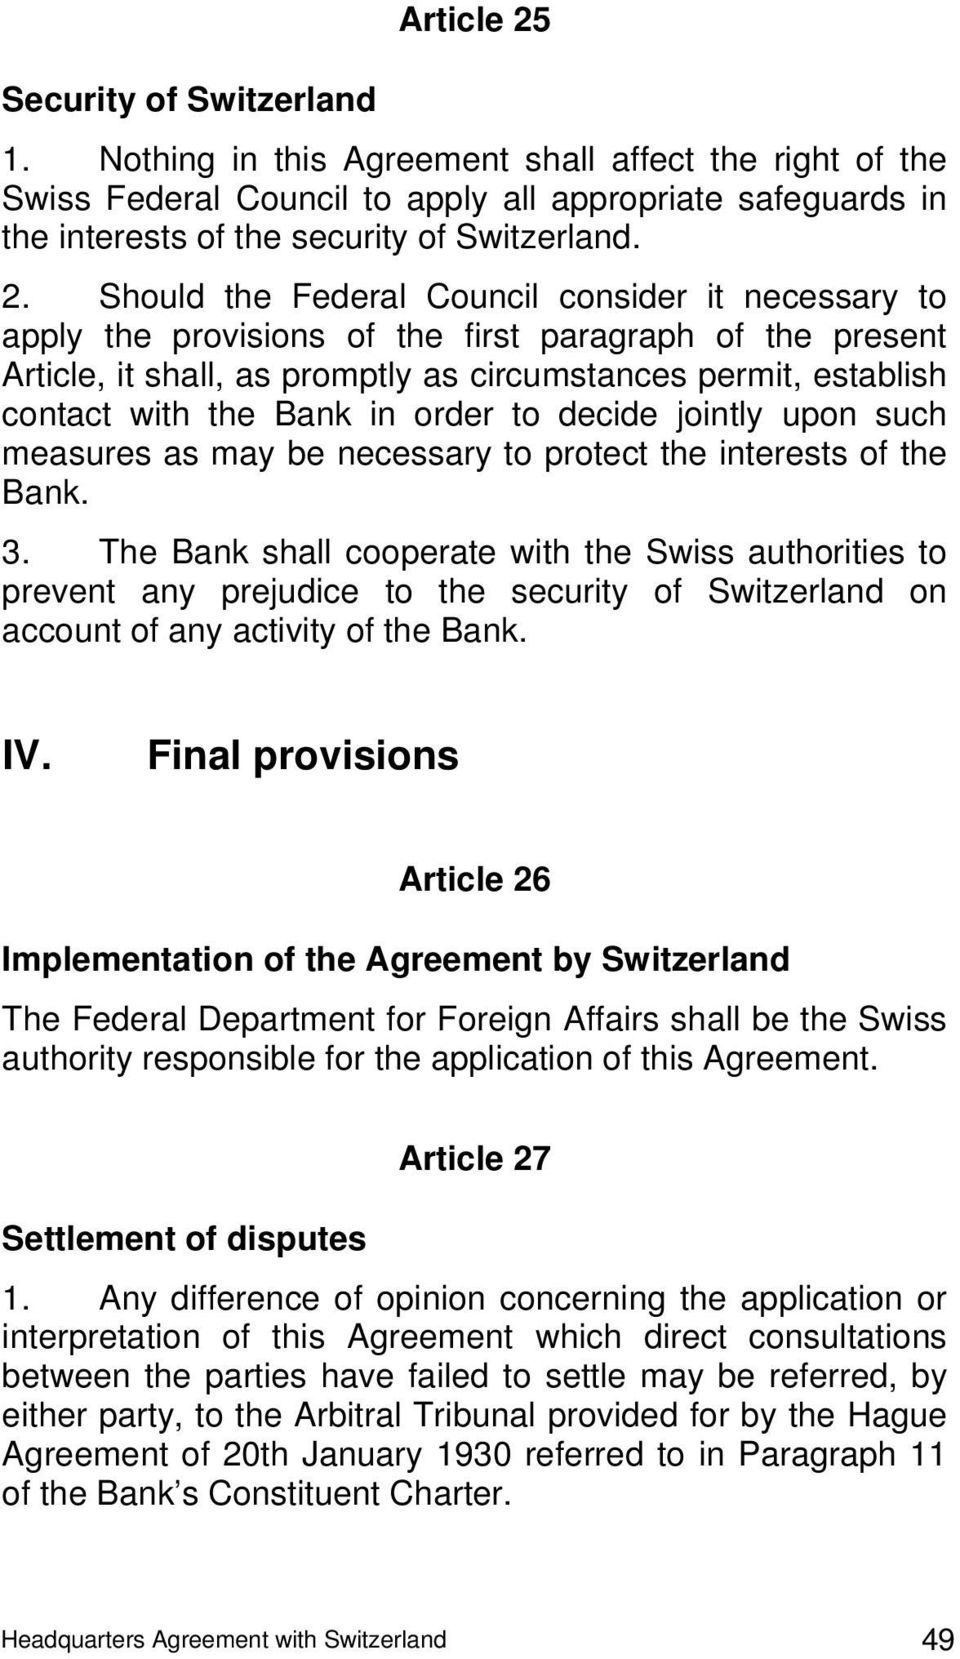 Bank in order to decide jointly upon such measures as may be necessary to protect the interests of the Bank. 3.